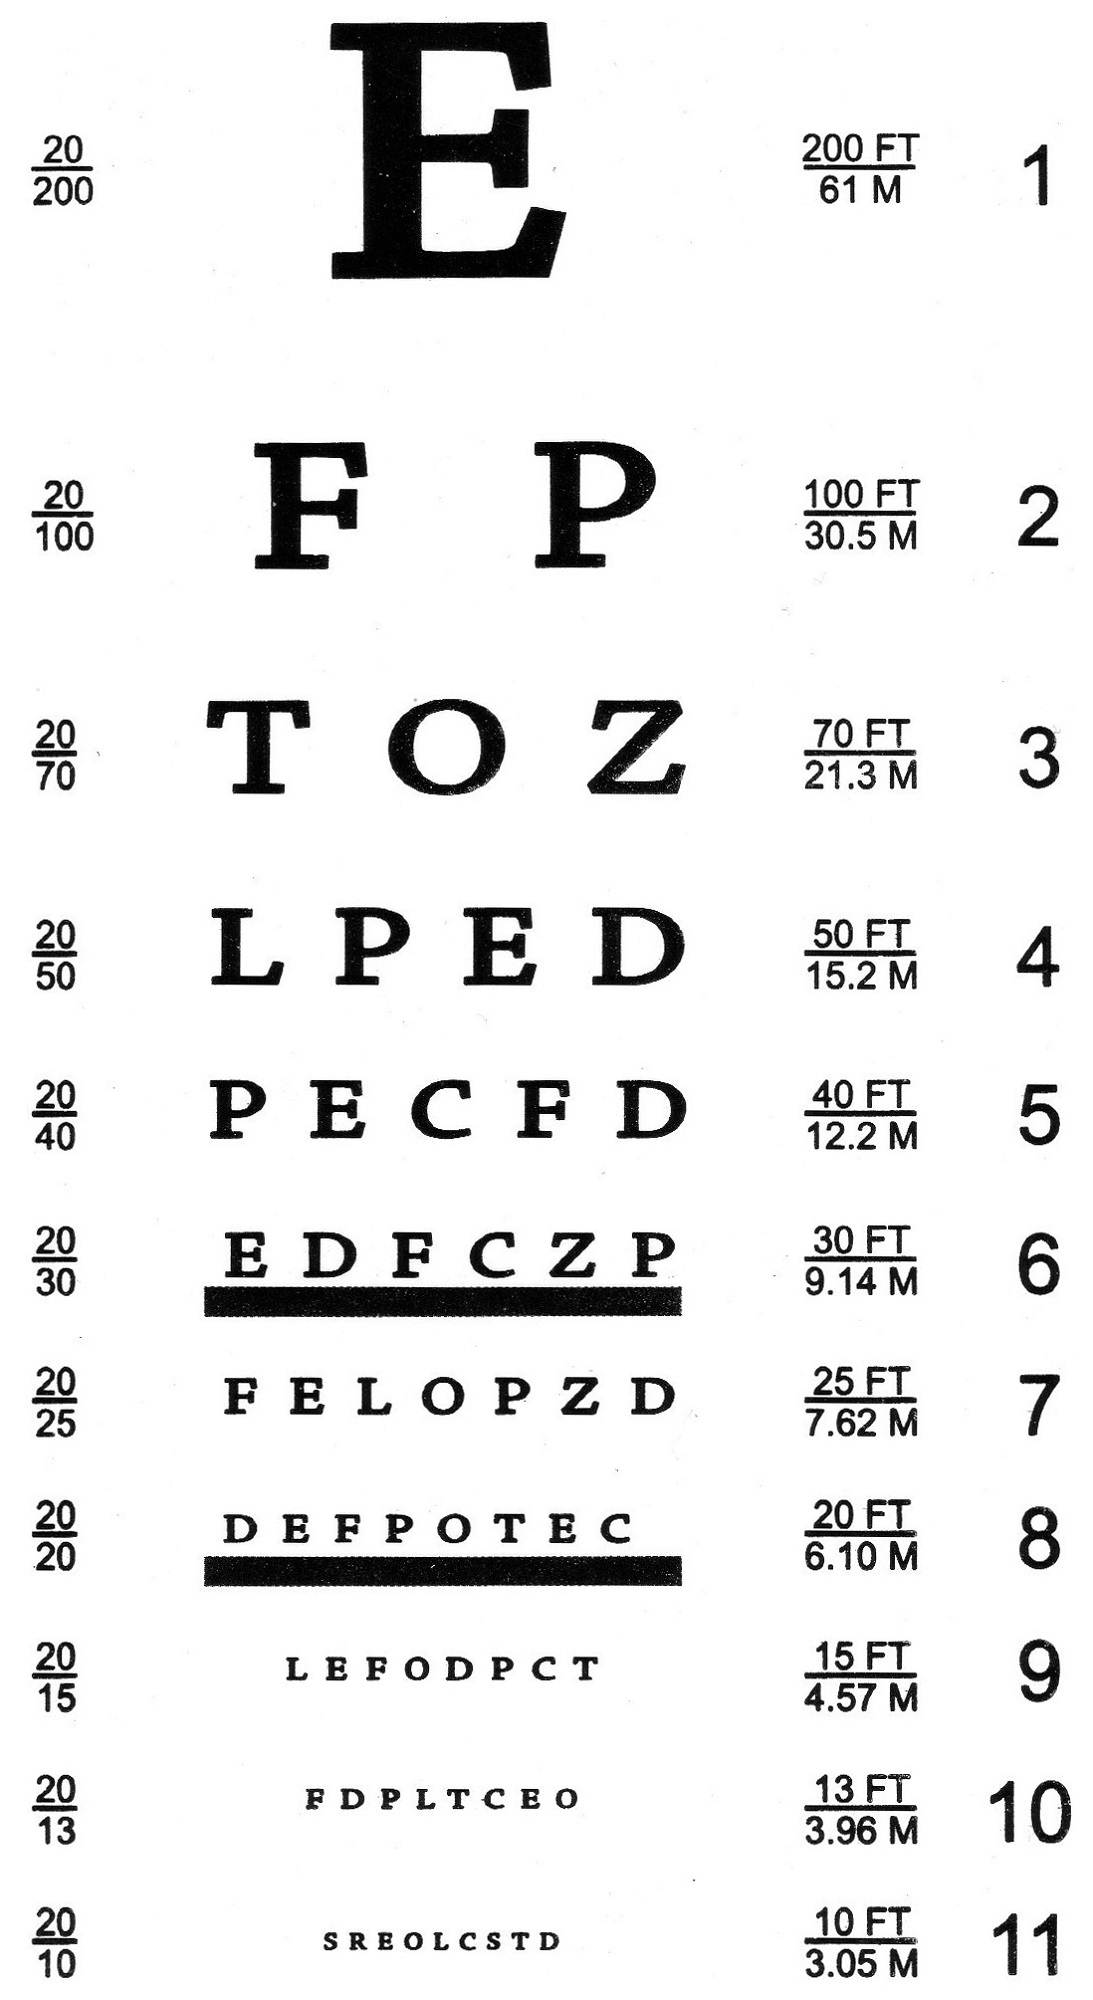 photo relating to Printable Eye Chart identify Printable Snellen Charts Game Shelter